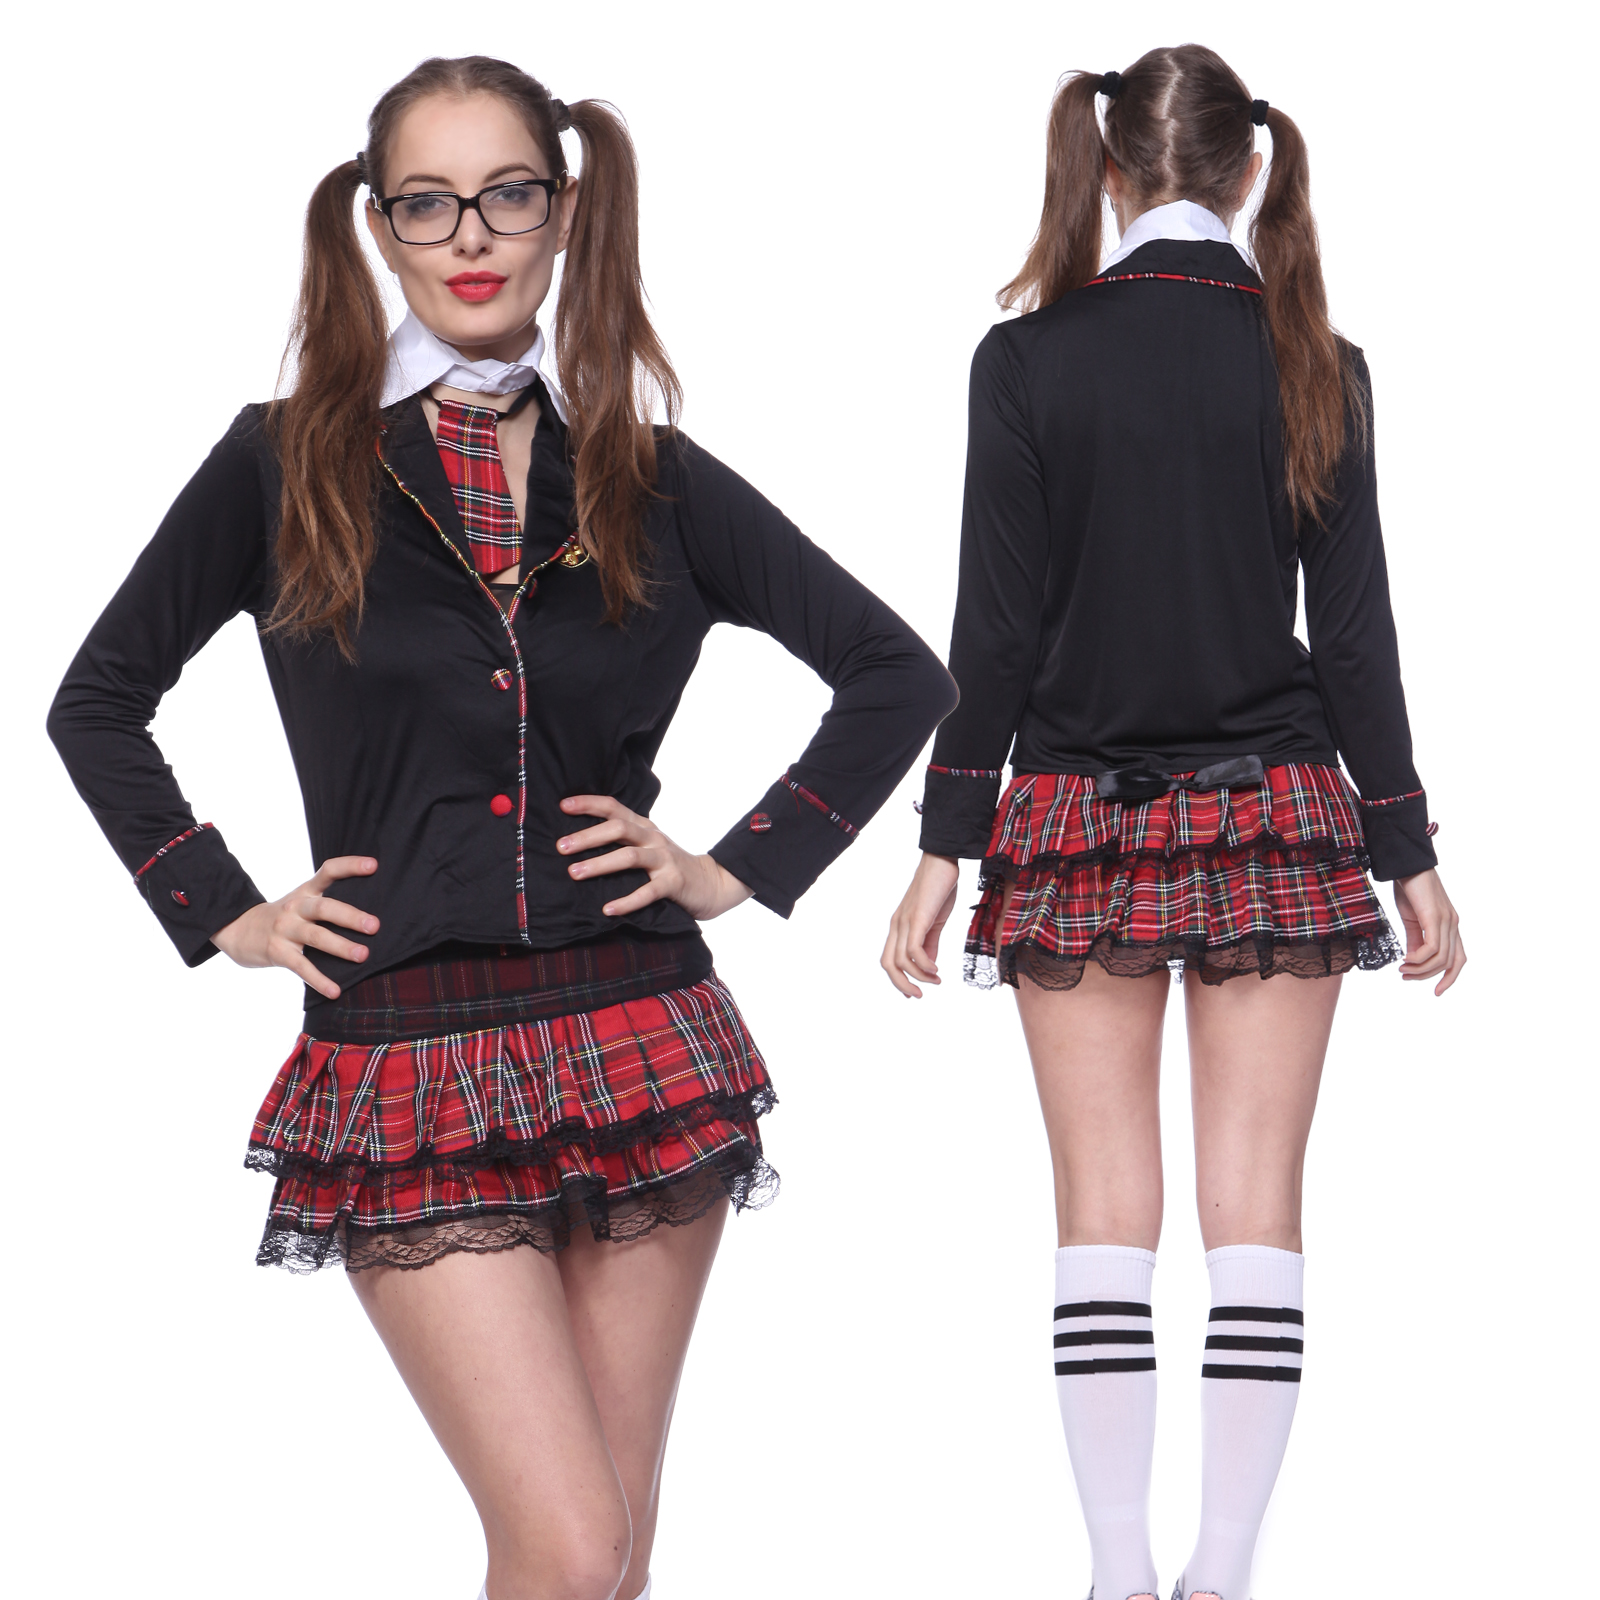 caf0ceec7 Sexy Cop Police Women Nurse School Girl Costume Role Play Fancy Dress Outfit